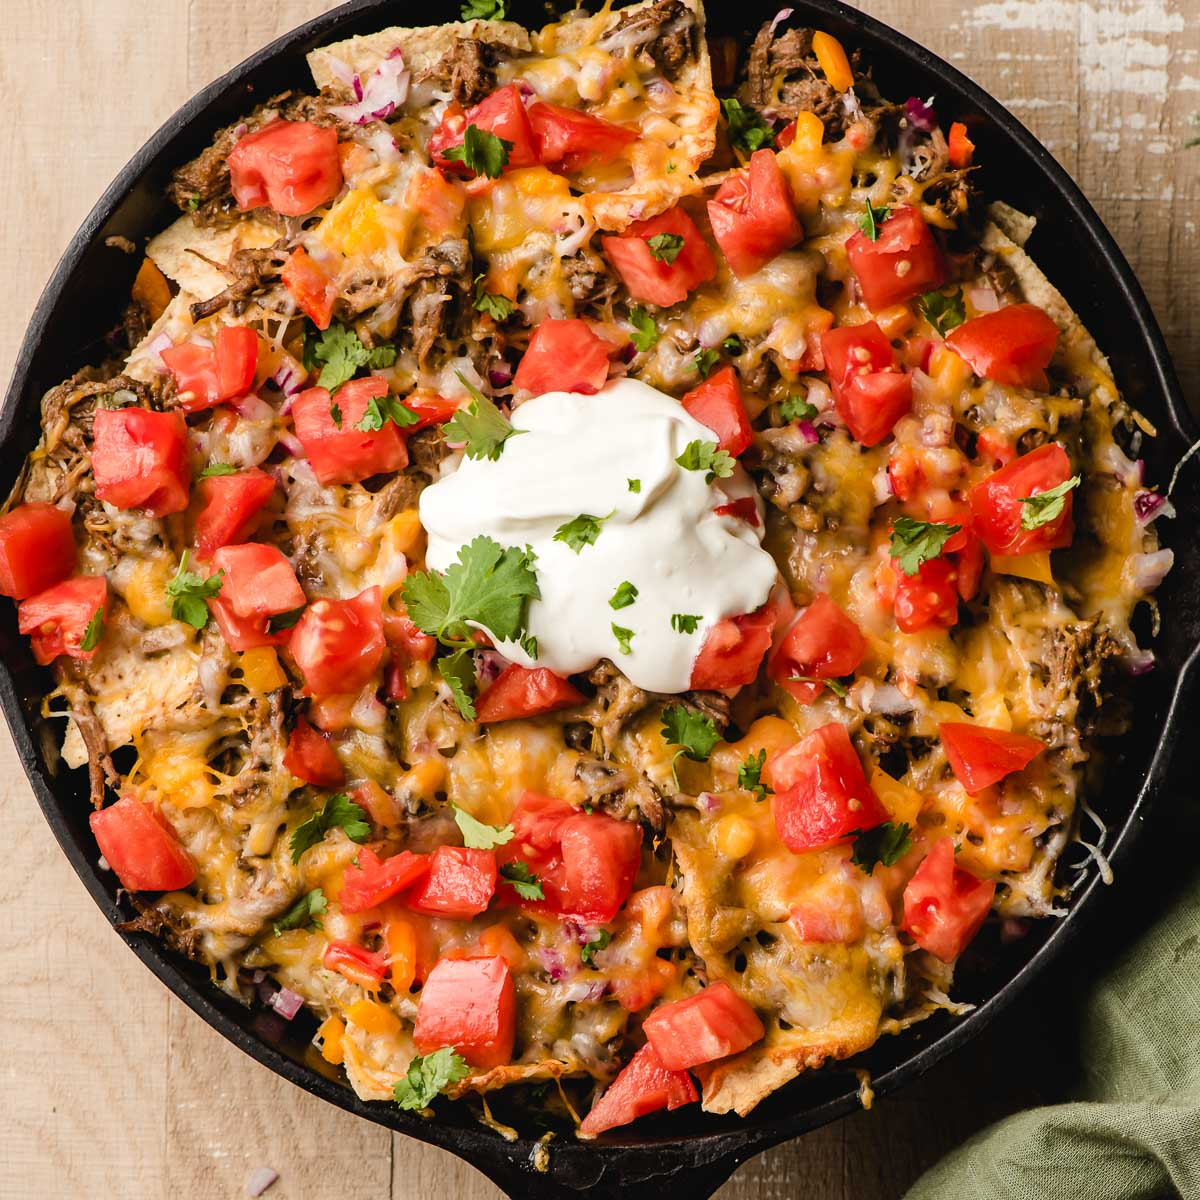 Cast Iron Skillet Nachos topped with beef, cheese, tomatoes, onions, sour cream, and cilantro.